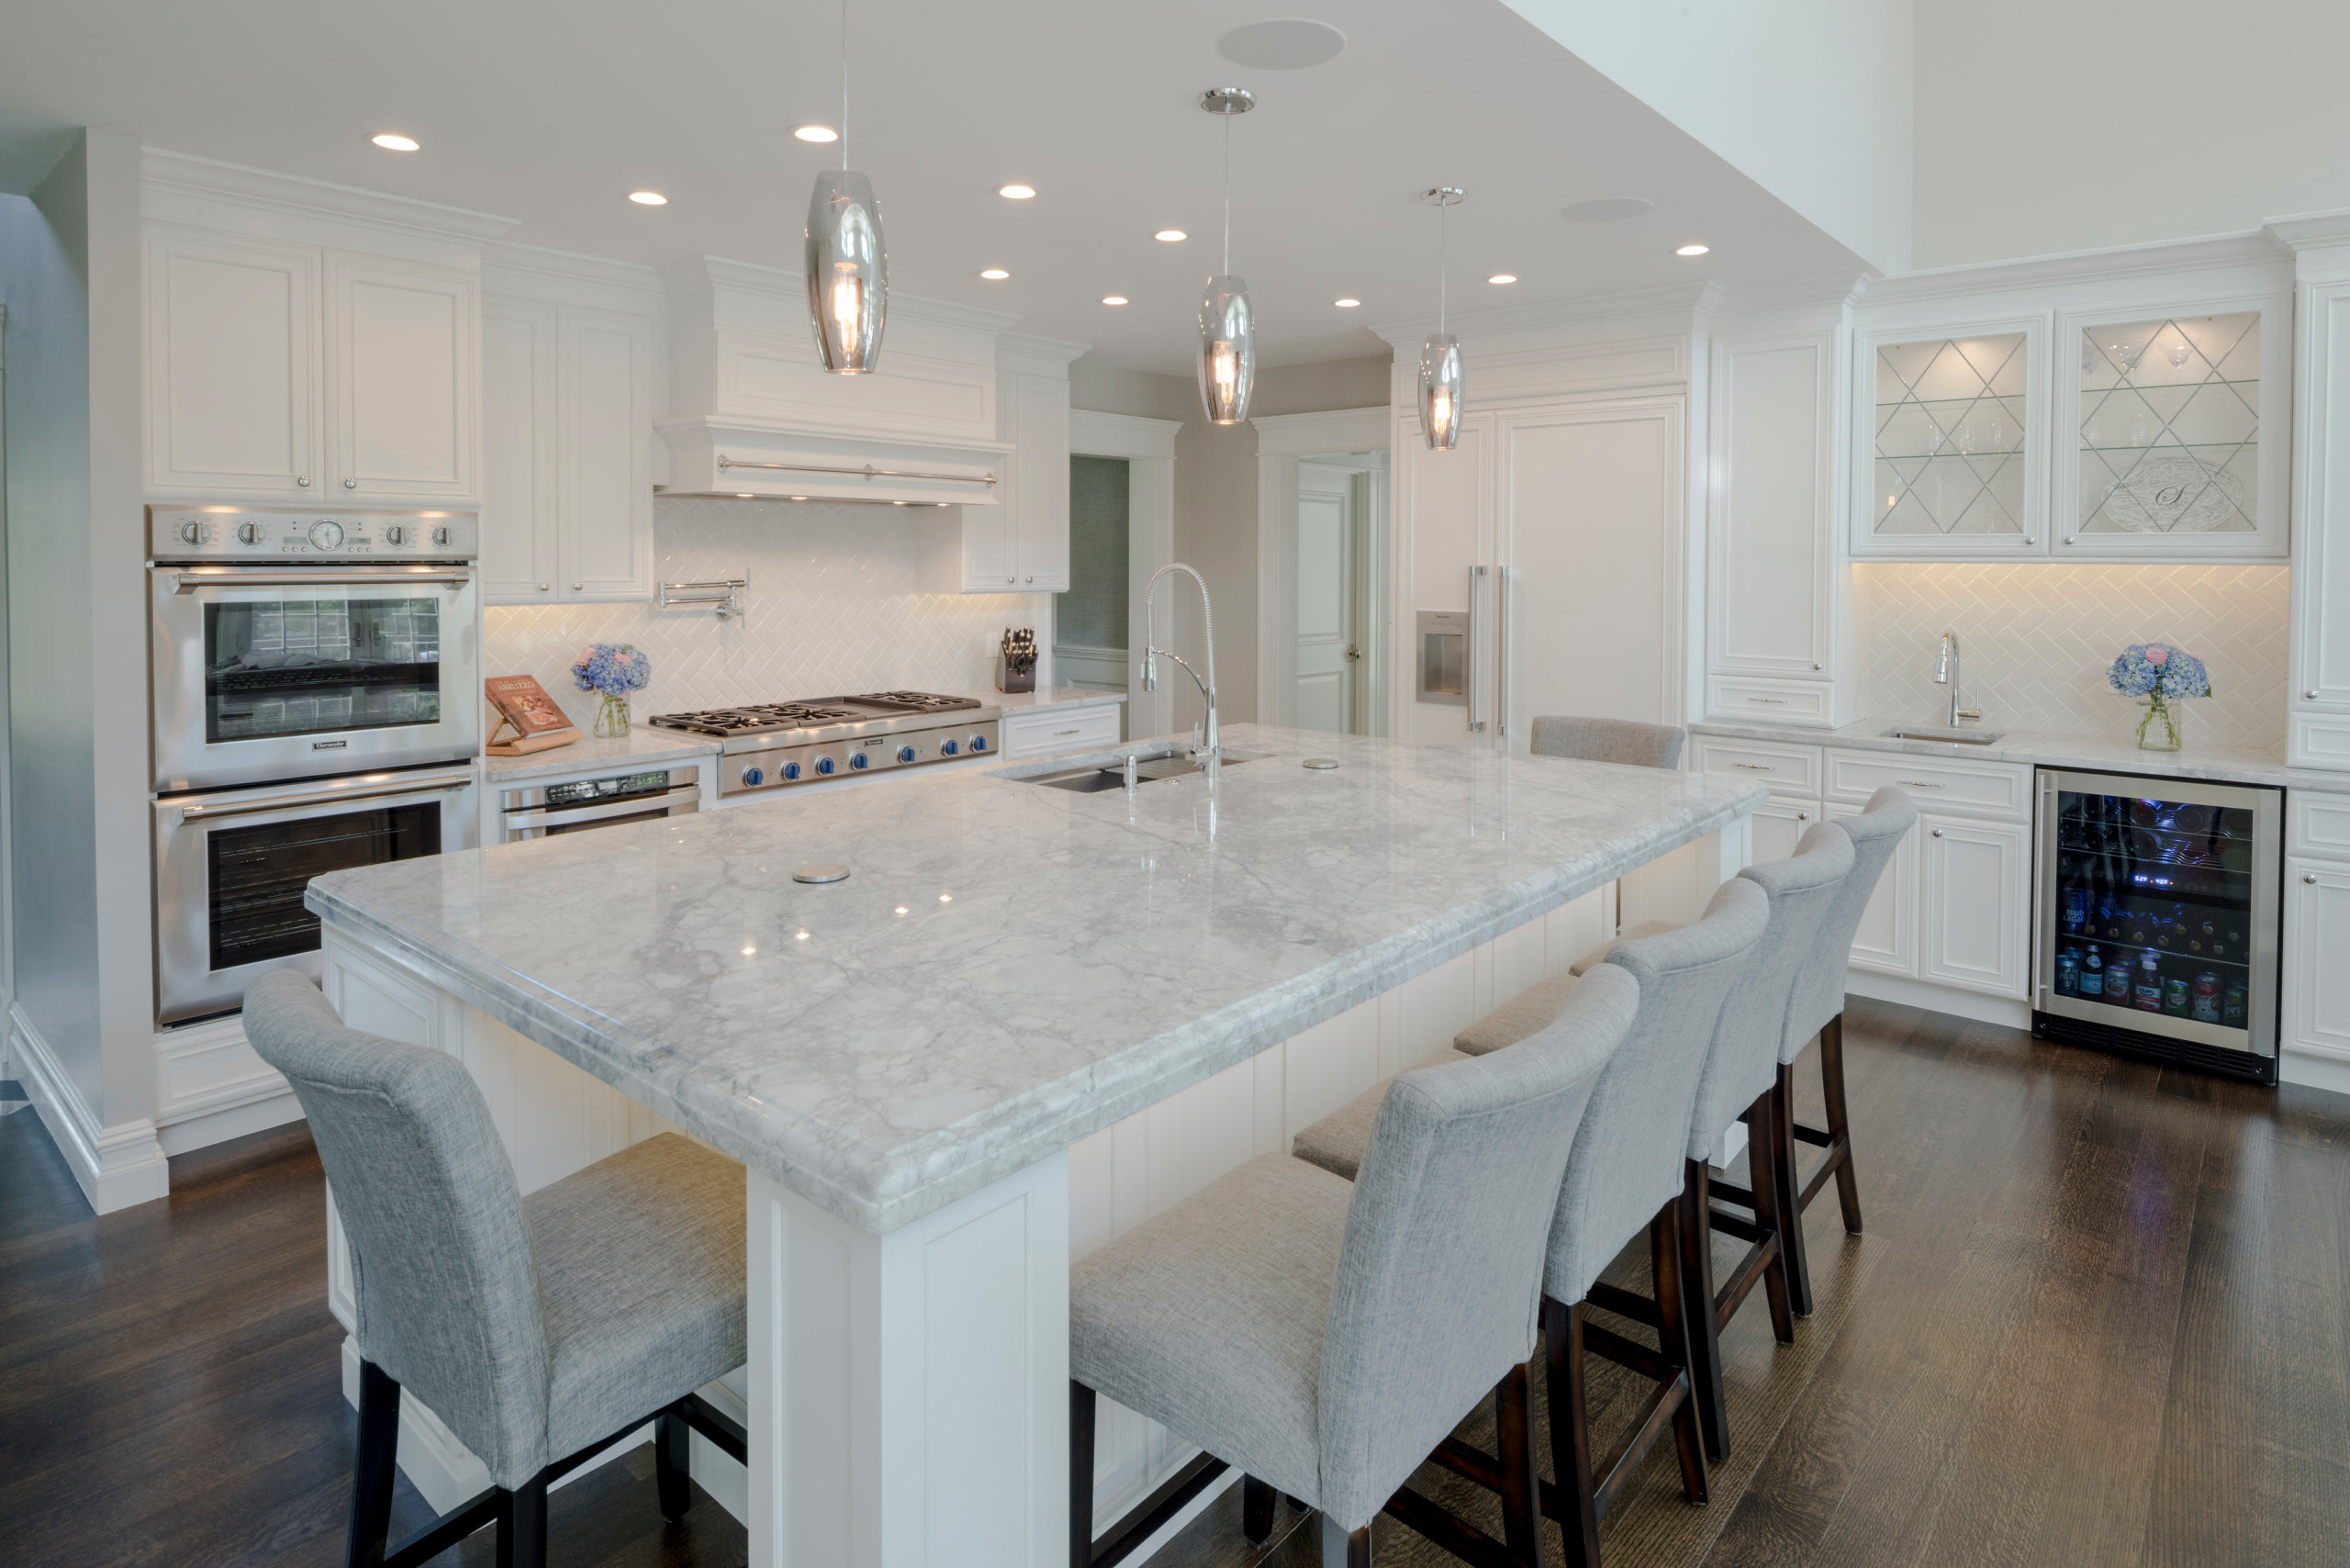 75 Beautiful Modern Kitchen With Beaded Inset Cabinets Pictures Ideas November 2020 Houzz